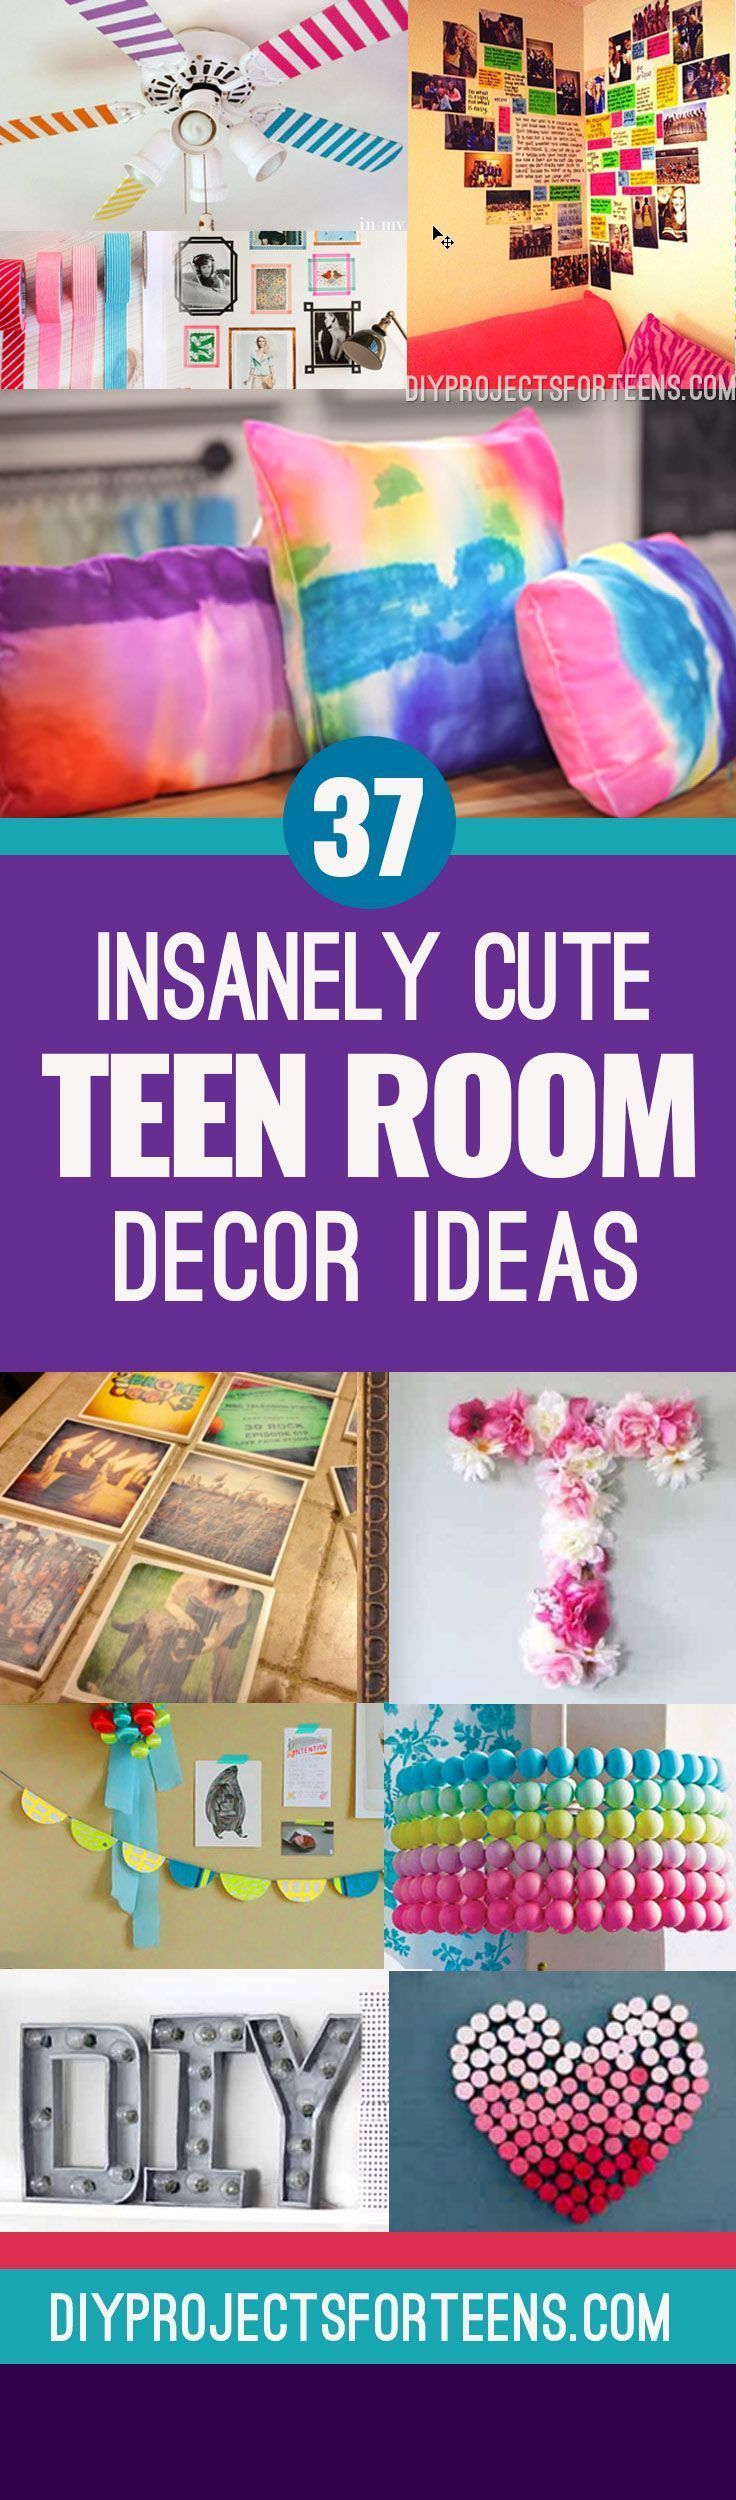 Bedroom Decor Crafts best 25+ diy teen room decor ideas on pinterest | diy room decore